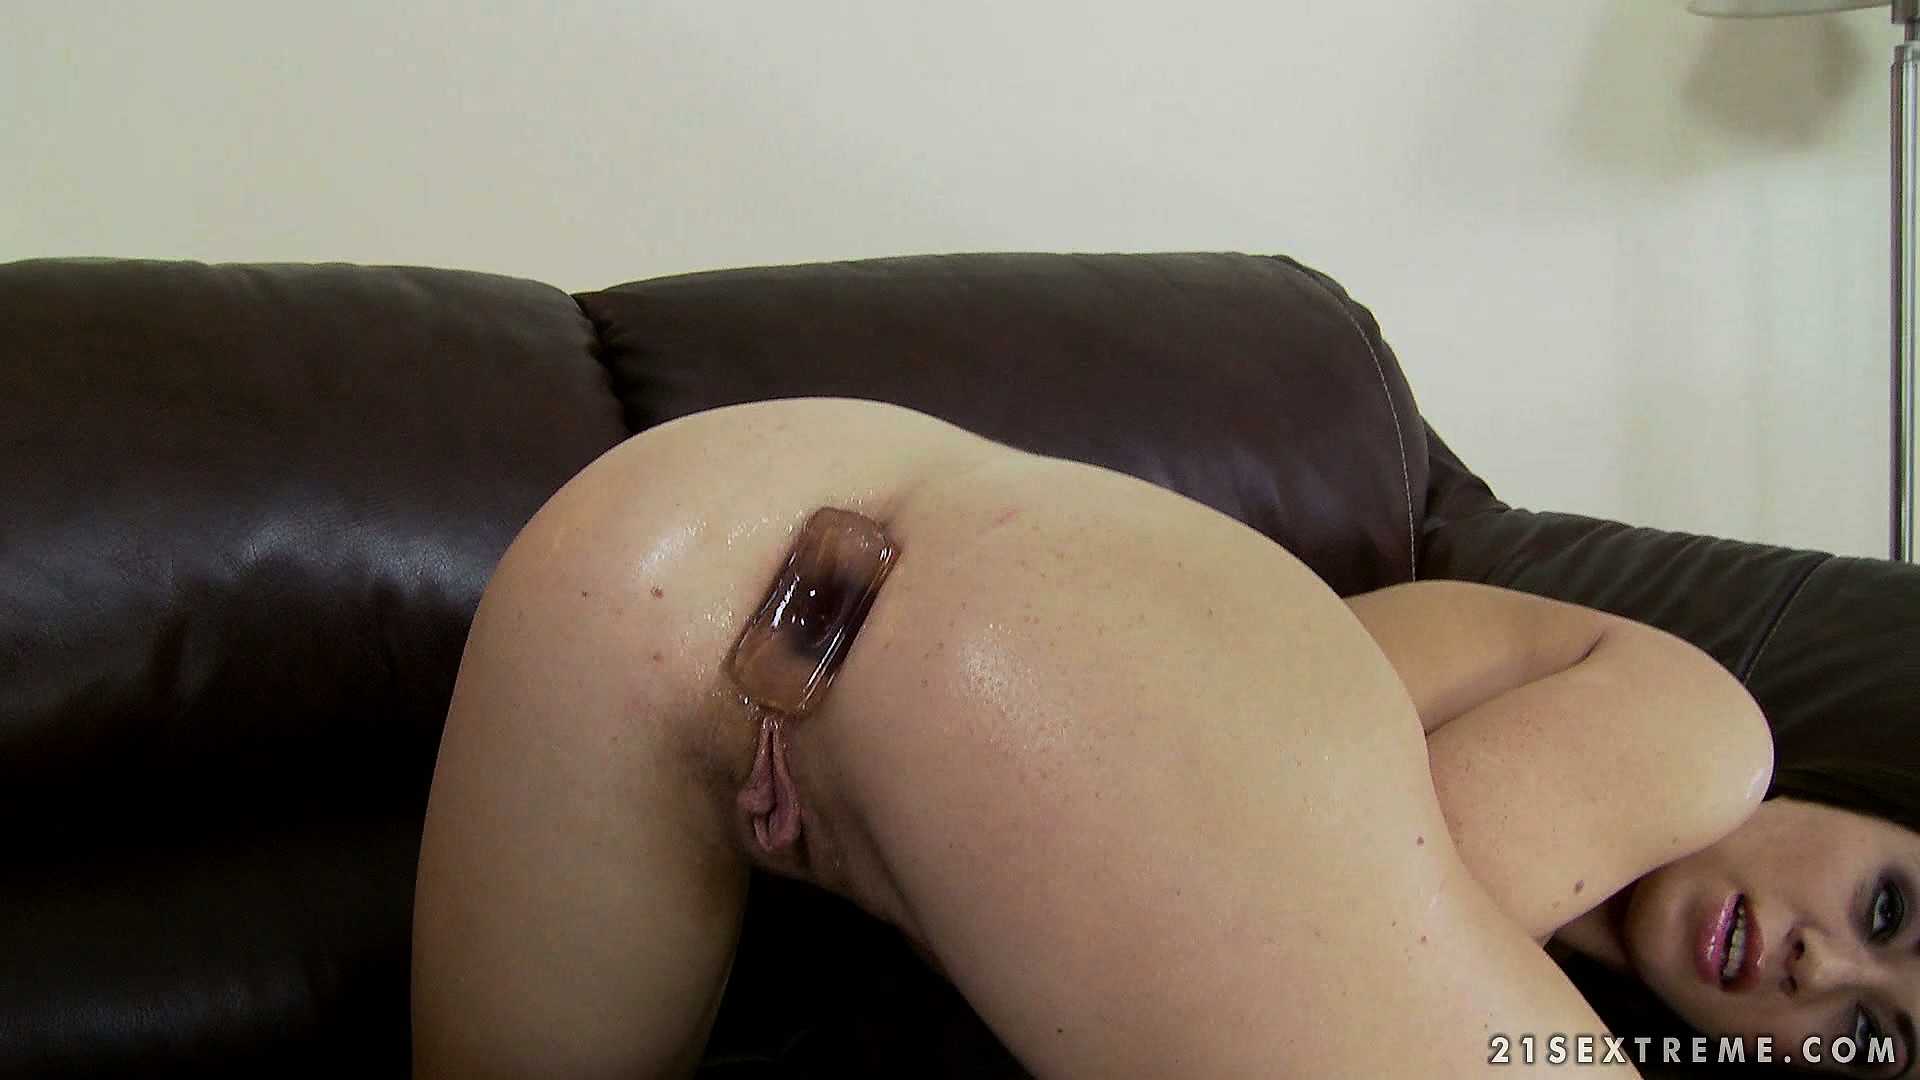 Porno Video of Tiffany Doll Takes Anal Toys Up Her Ass And Gets Her Clit Vibed